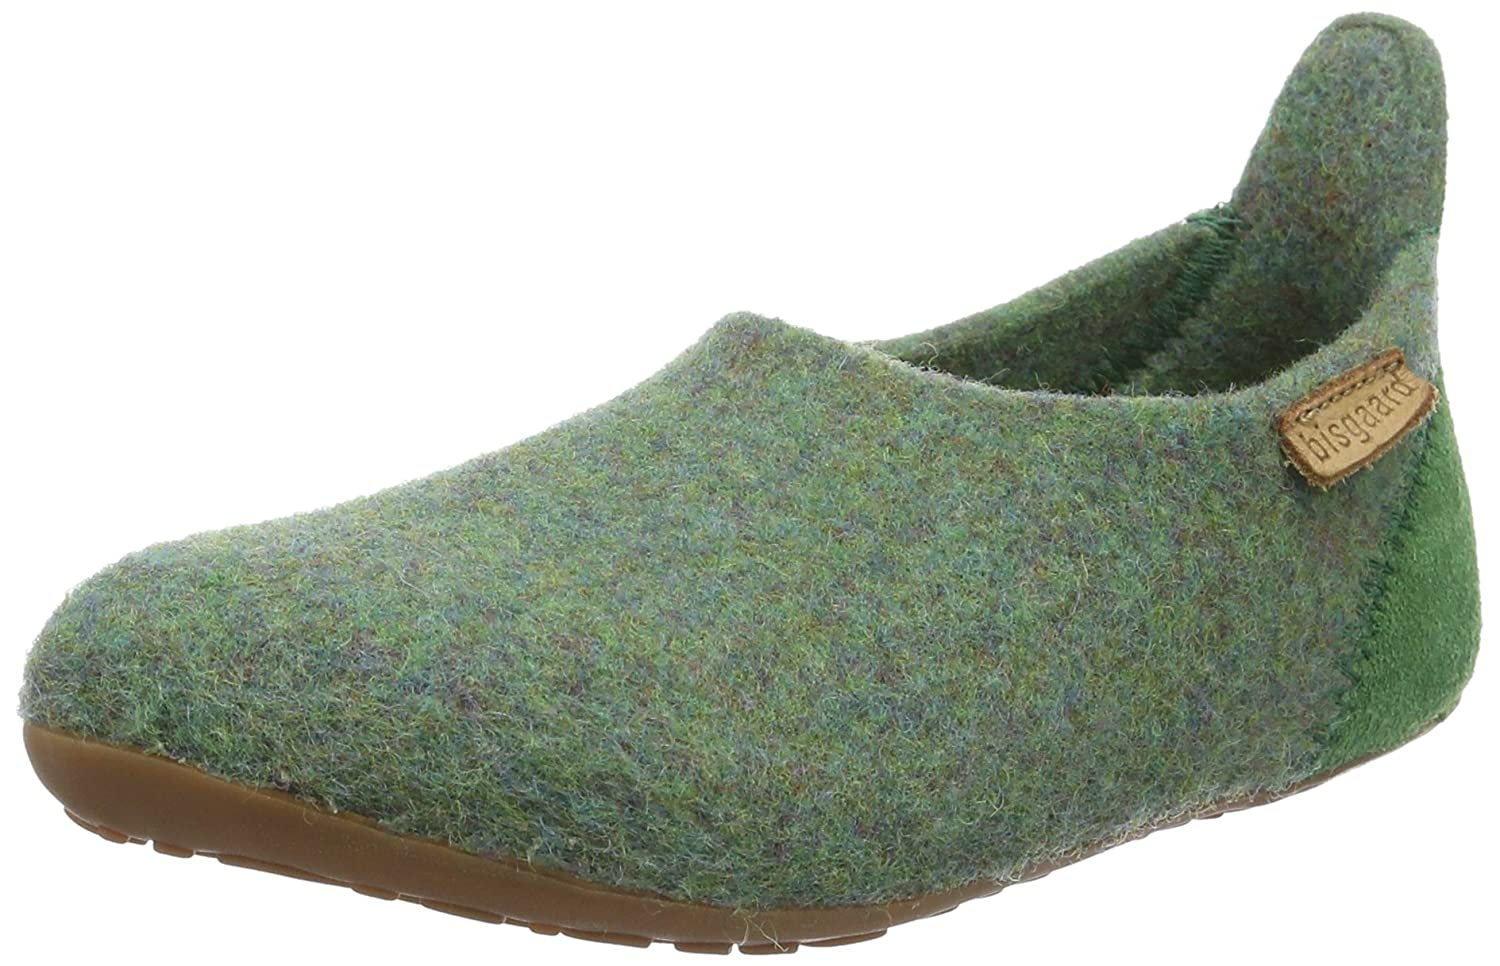 O/&N Girls Boys Kids Cute Suede Leather Slip-On Loafers Flats Casual Shoes